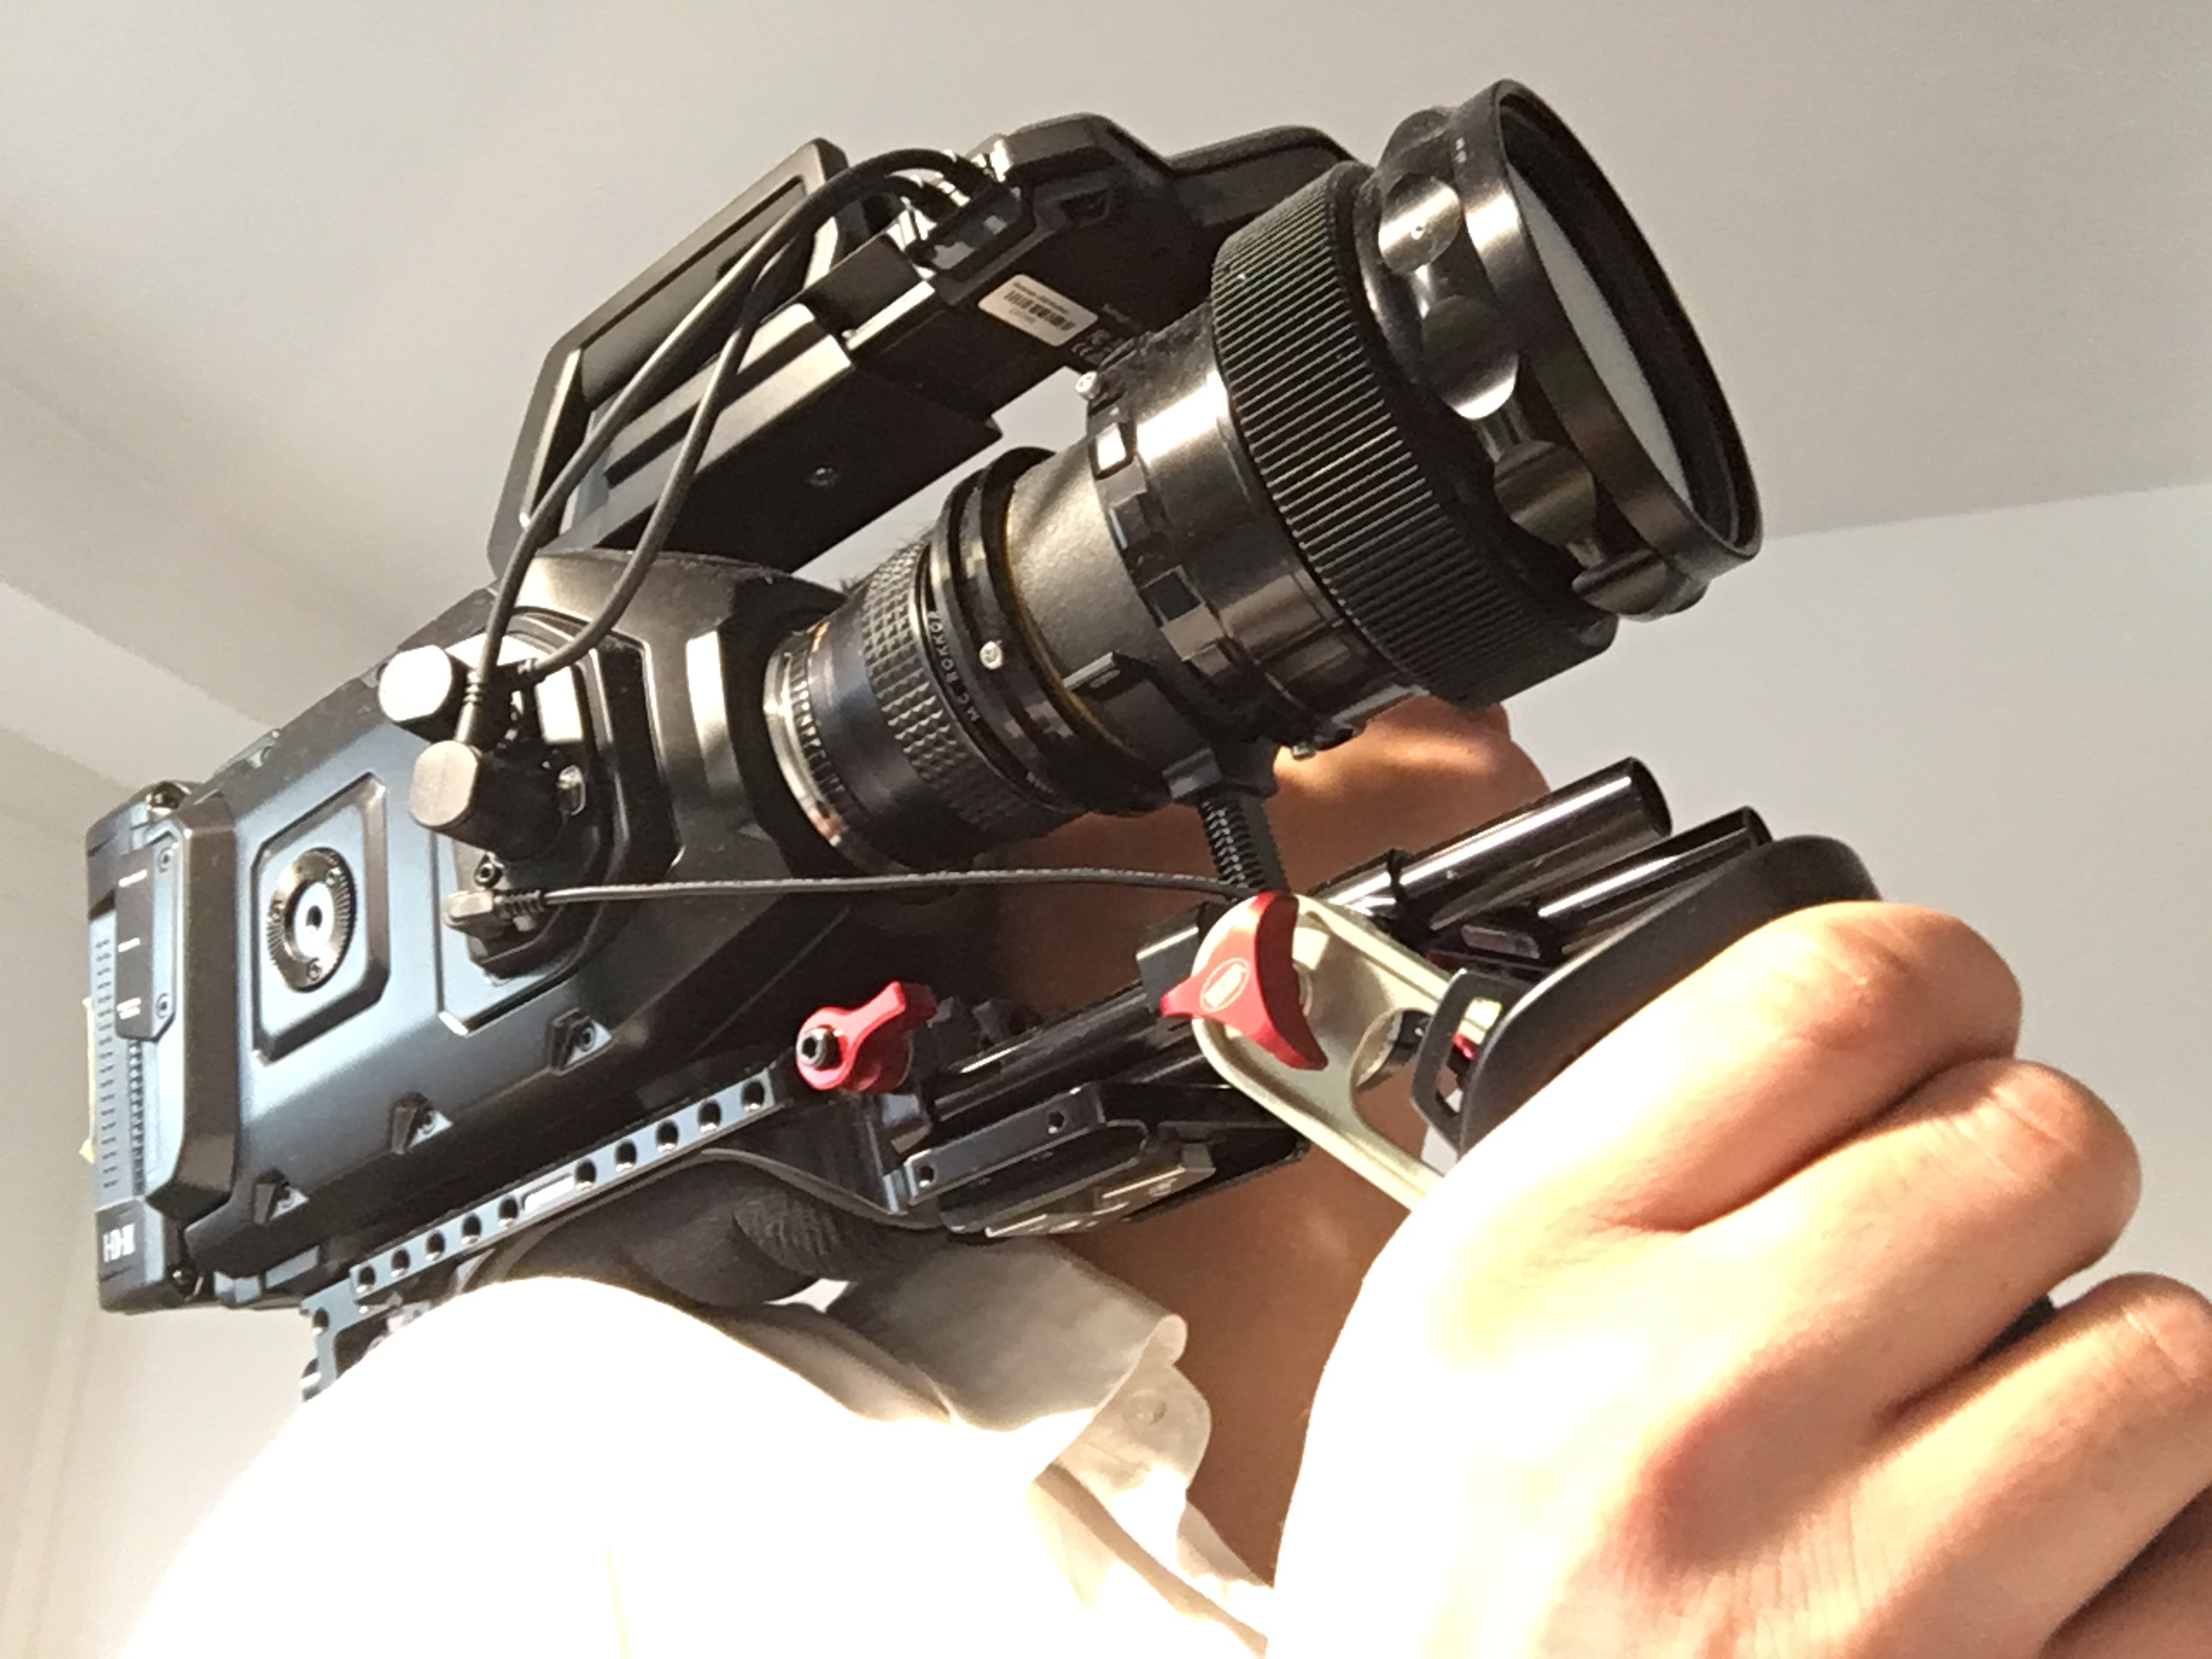 Real Anamorphic for less? The Rectilux 3FF-W single focus adapter